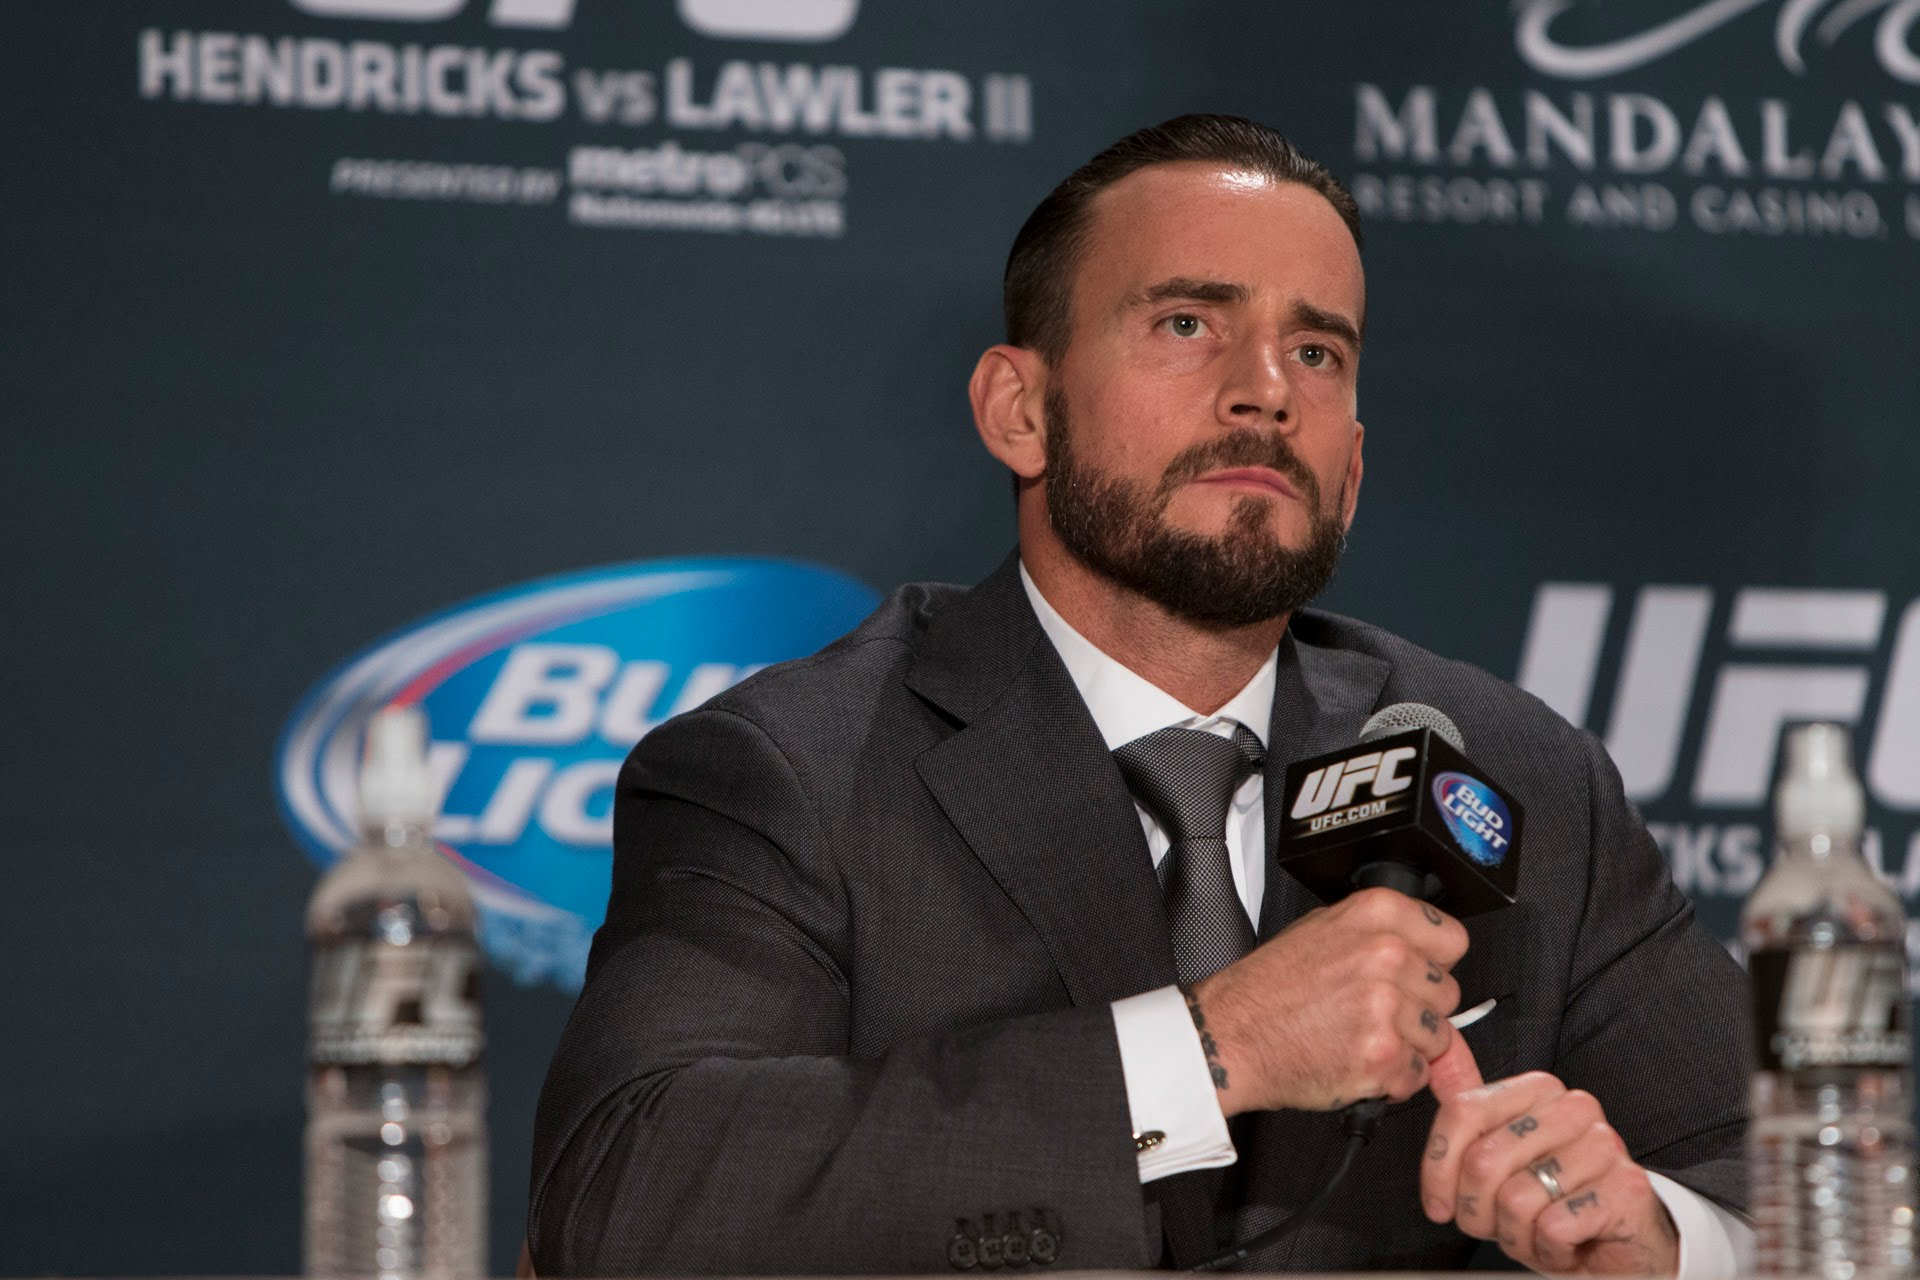 Cm punk chooses a mma training camp stillrealtous cm punk has selected roufusport as the training facility and team for his mma career according to internet mma personality front row brian publicscrutiny Images